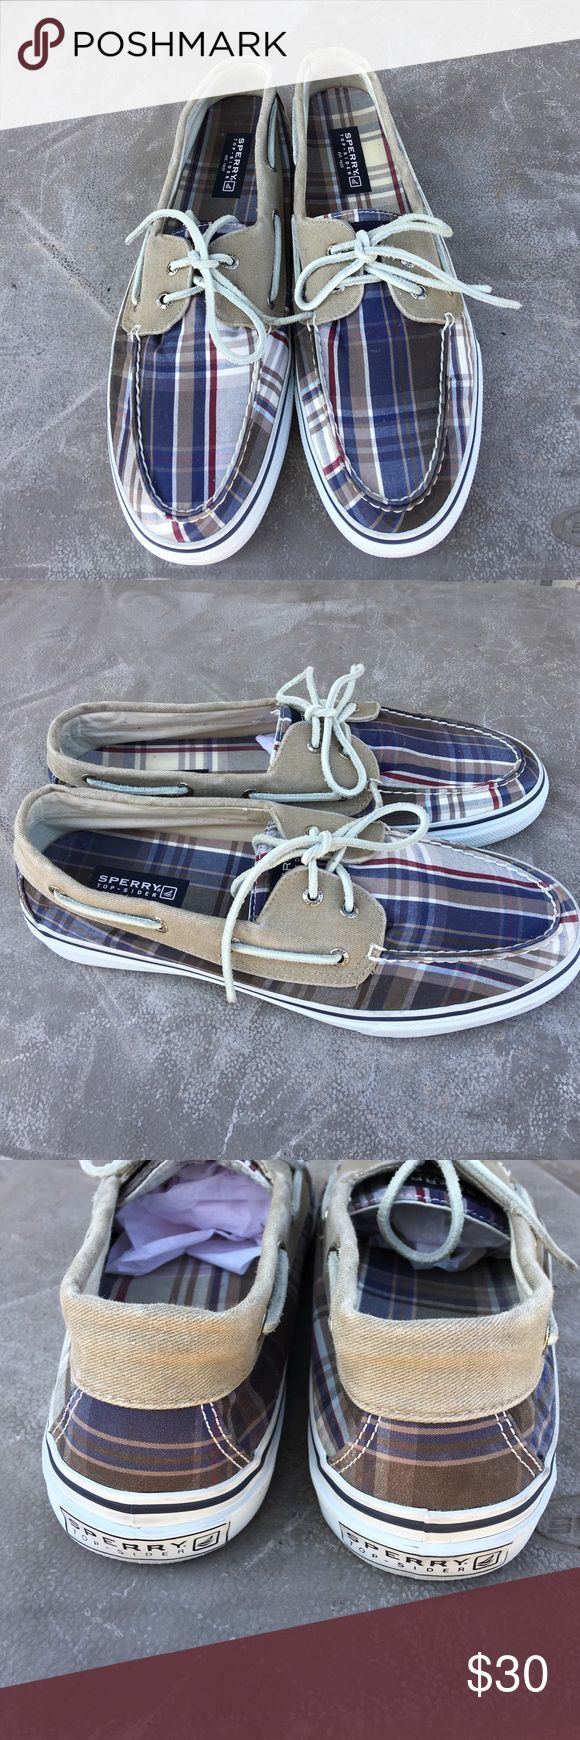 Men's Plaid Sperry Top Siders Size 12M These shoes are in great condition. The shoes pictured are the ones I'm selling. Really nice. No flaws. Sperry Top-Sider Shoes Boat Shoes